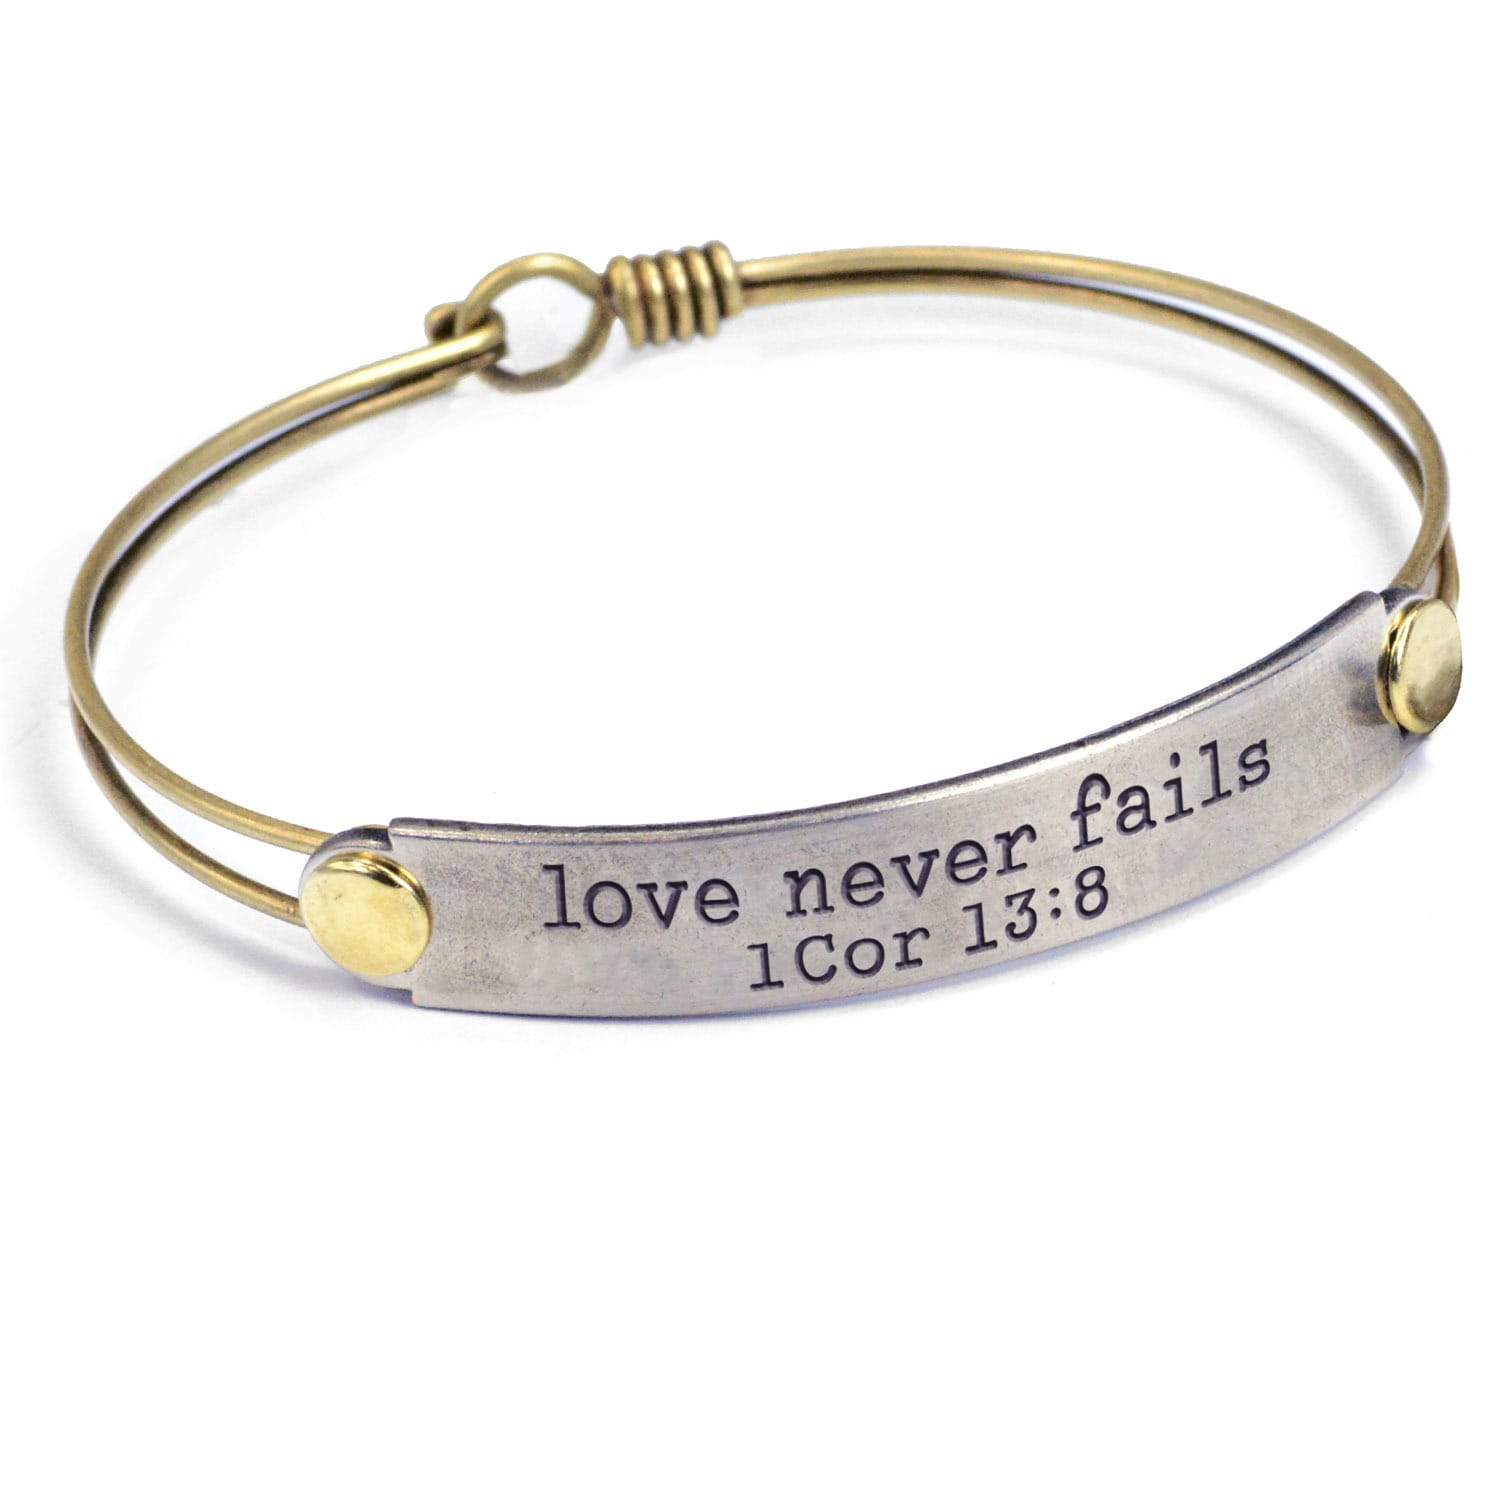 love bangle you to the penny bracelet word brass jewelry bangles i top shelf moon back ts